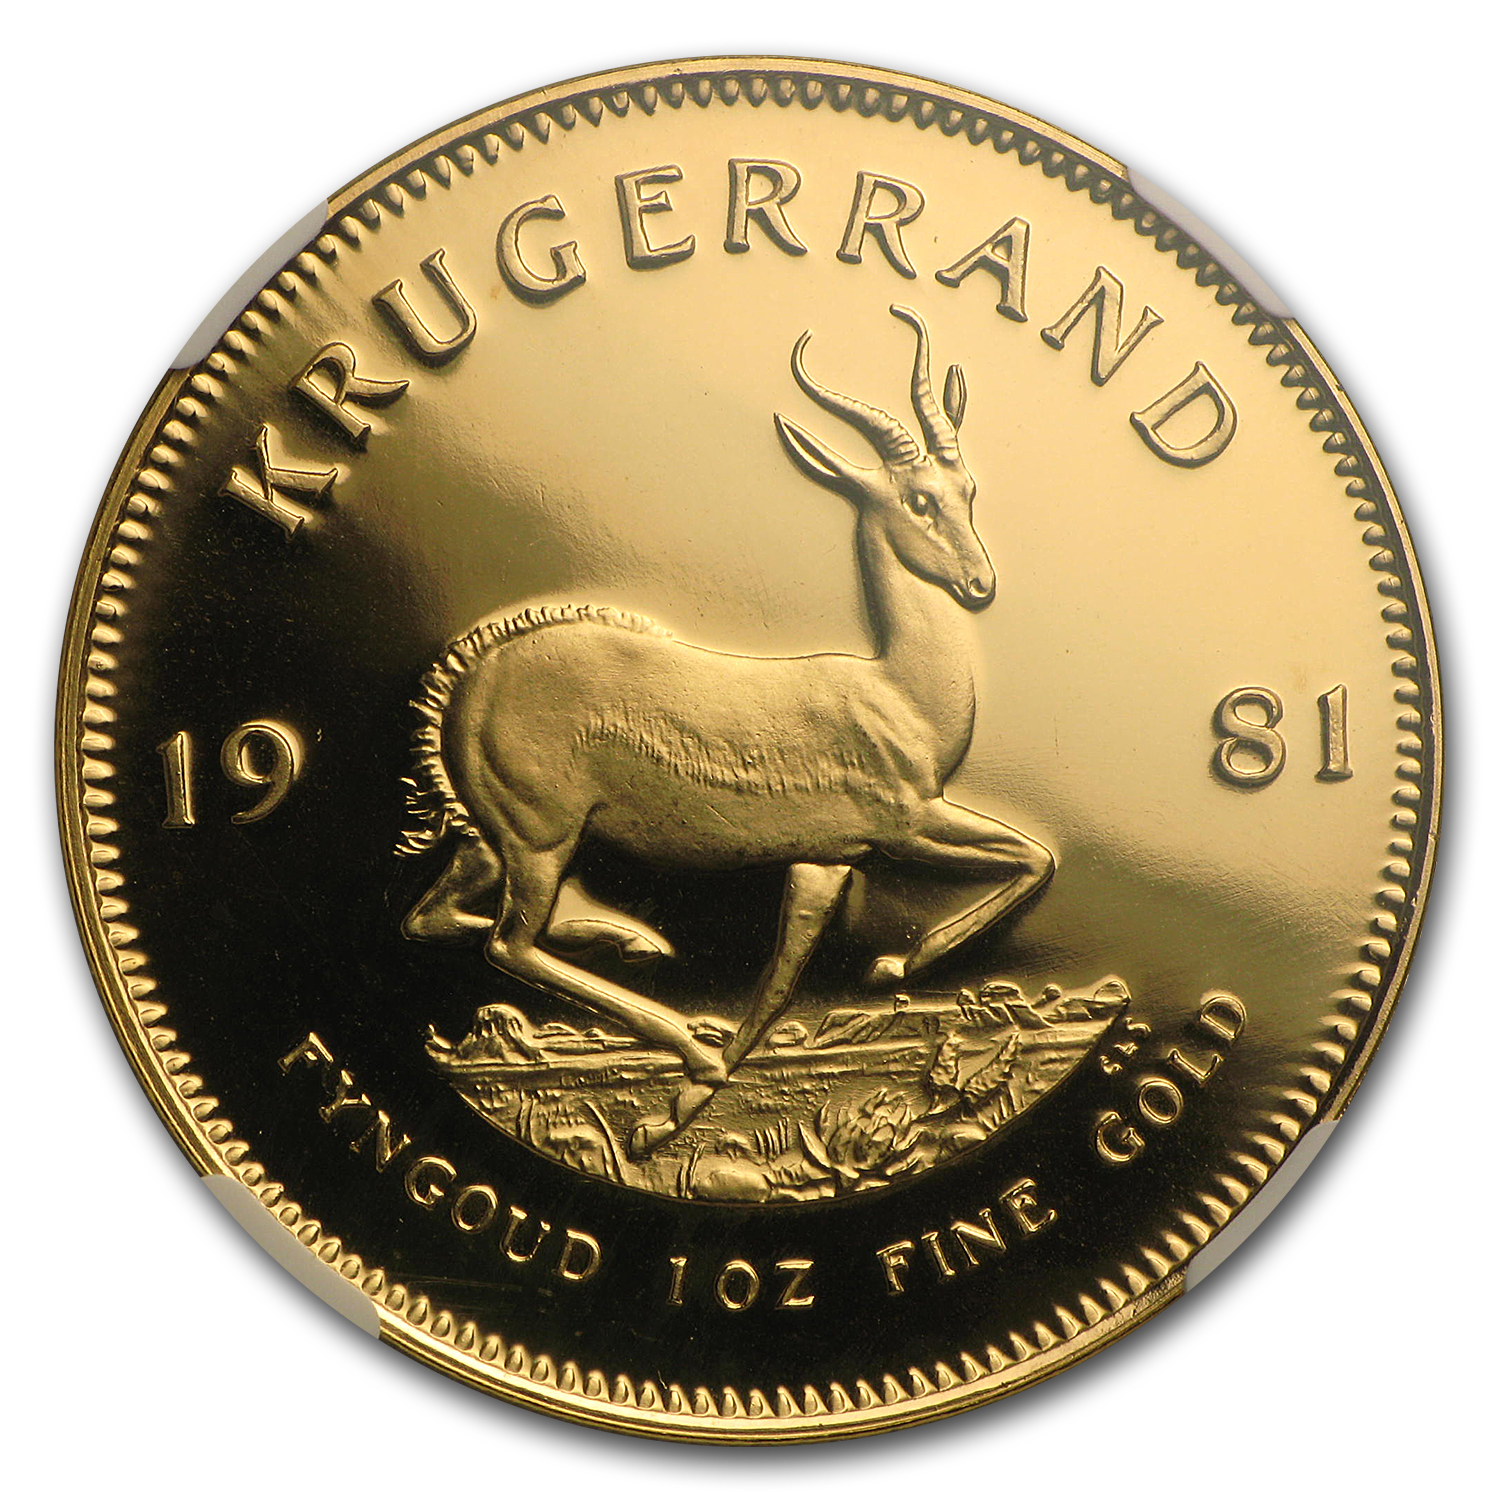 1981 South Africa 1 oz Gold Krugerrand PF-68 NGC